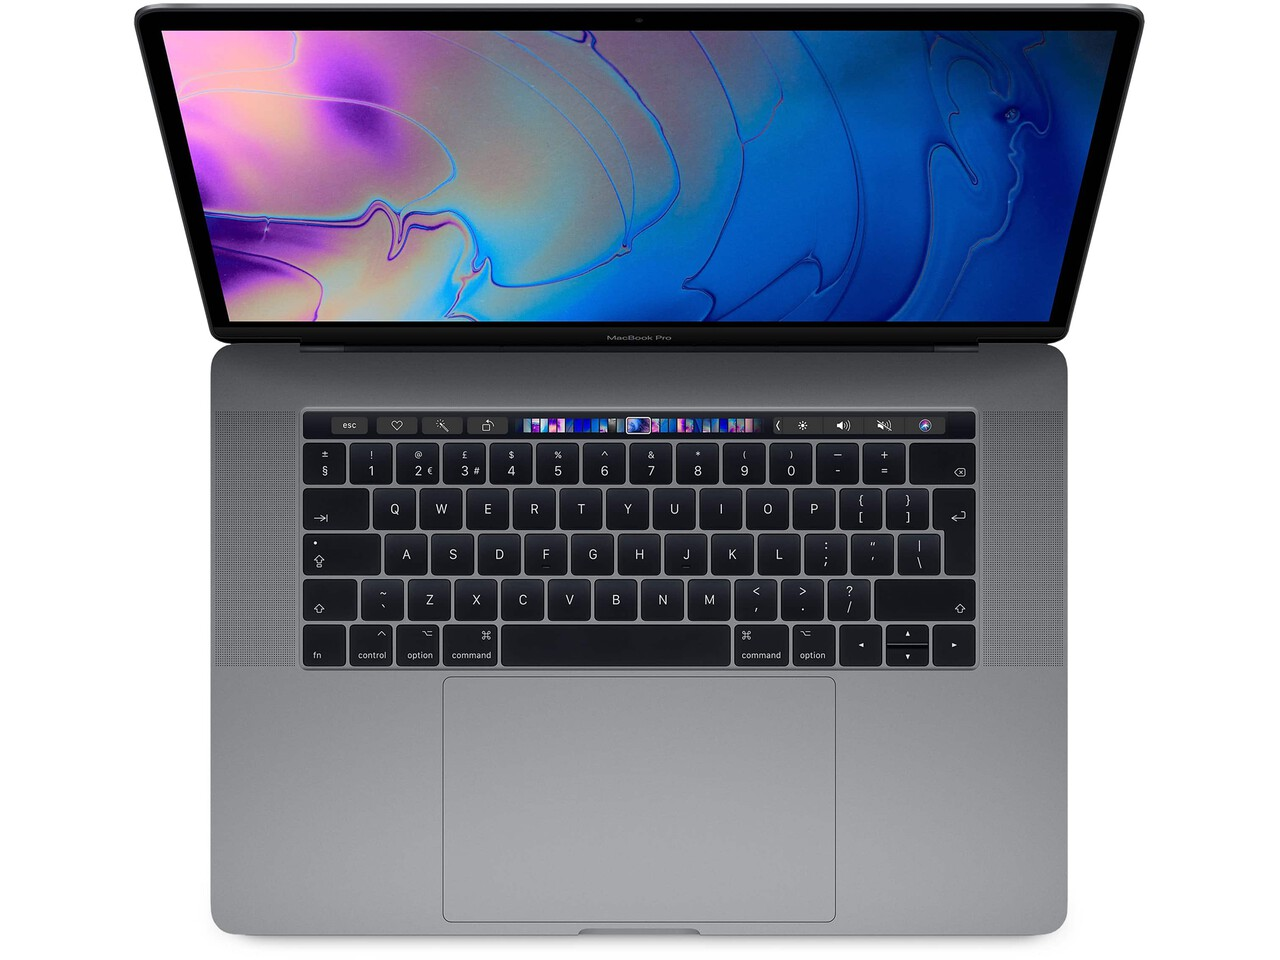 macbook pro 15 inch touch bar 2018 space gray